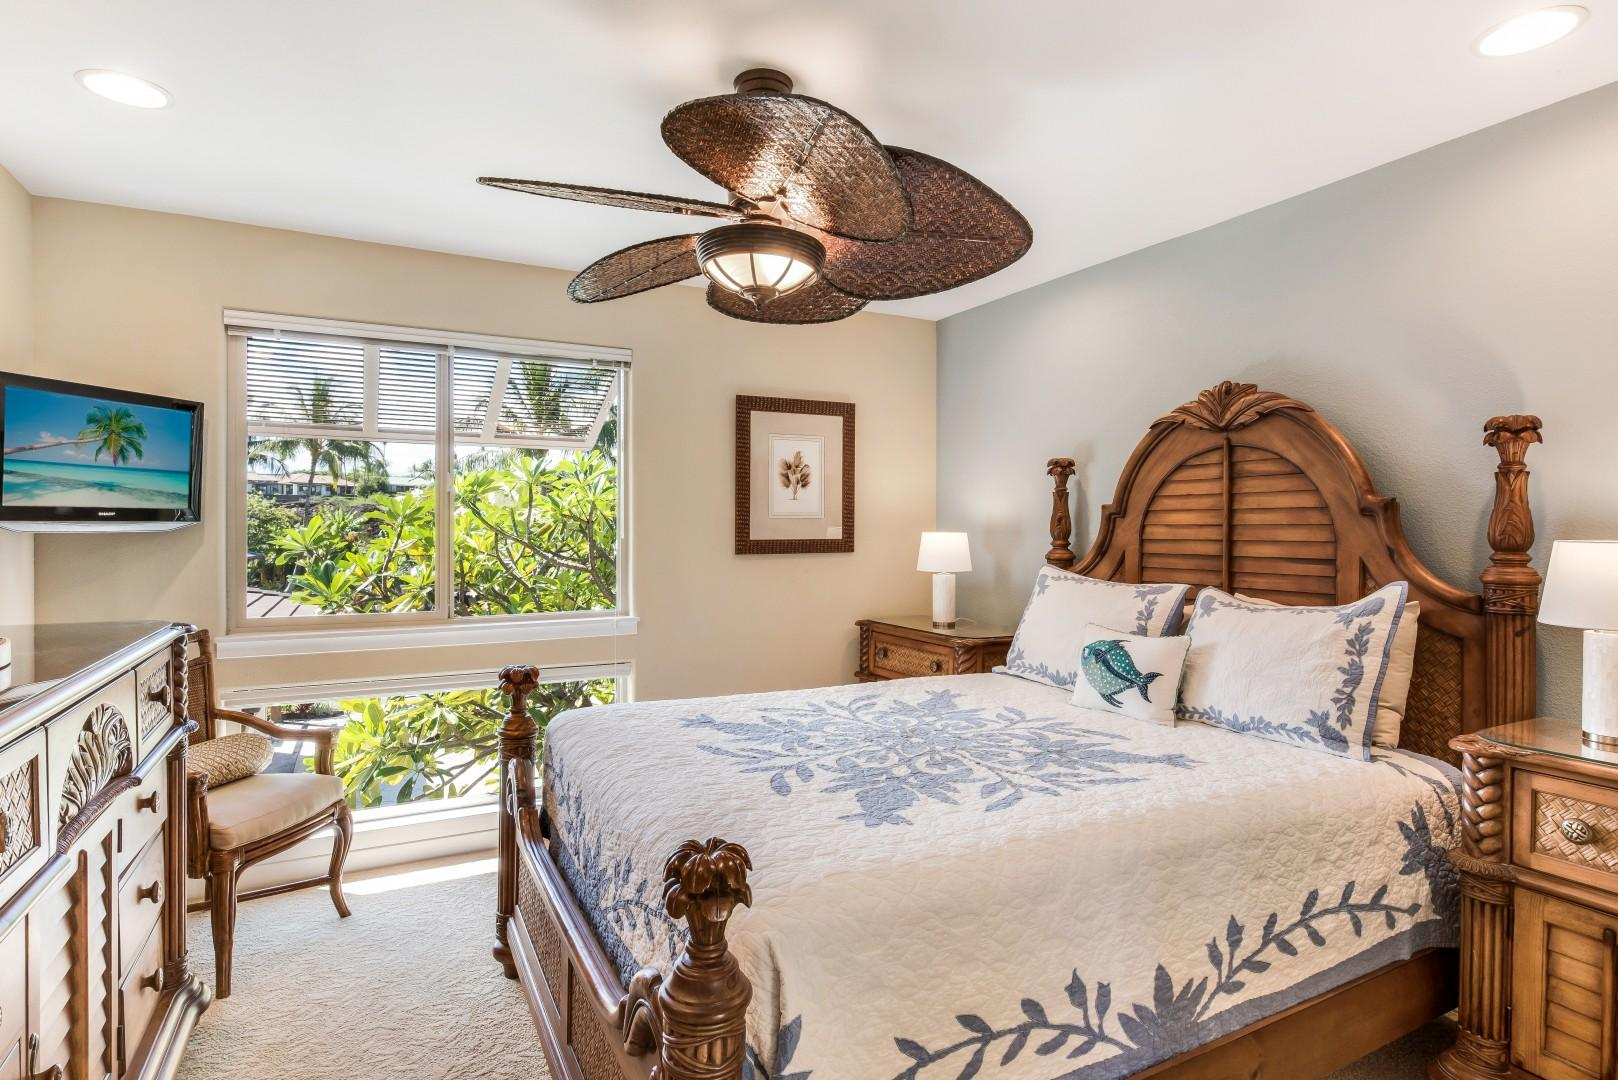 Guest Bedroom w/ Queen Bed, TV & Large Window Looking Over Lush Tropical Landscape